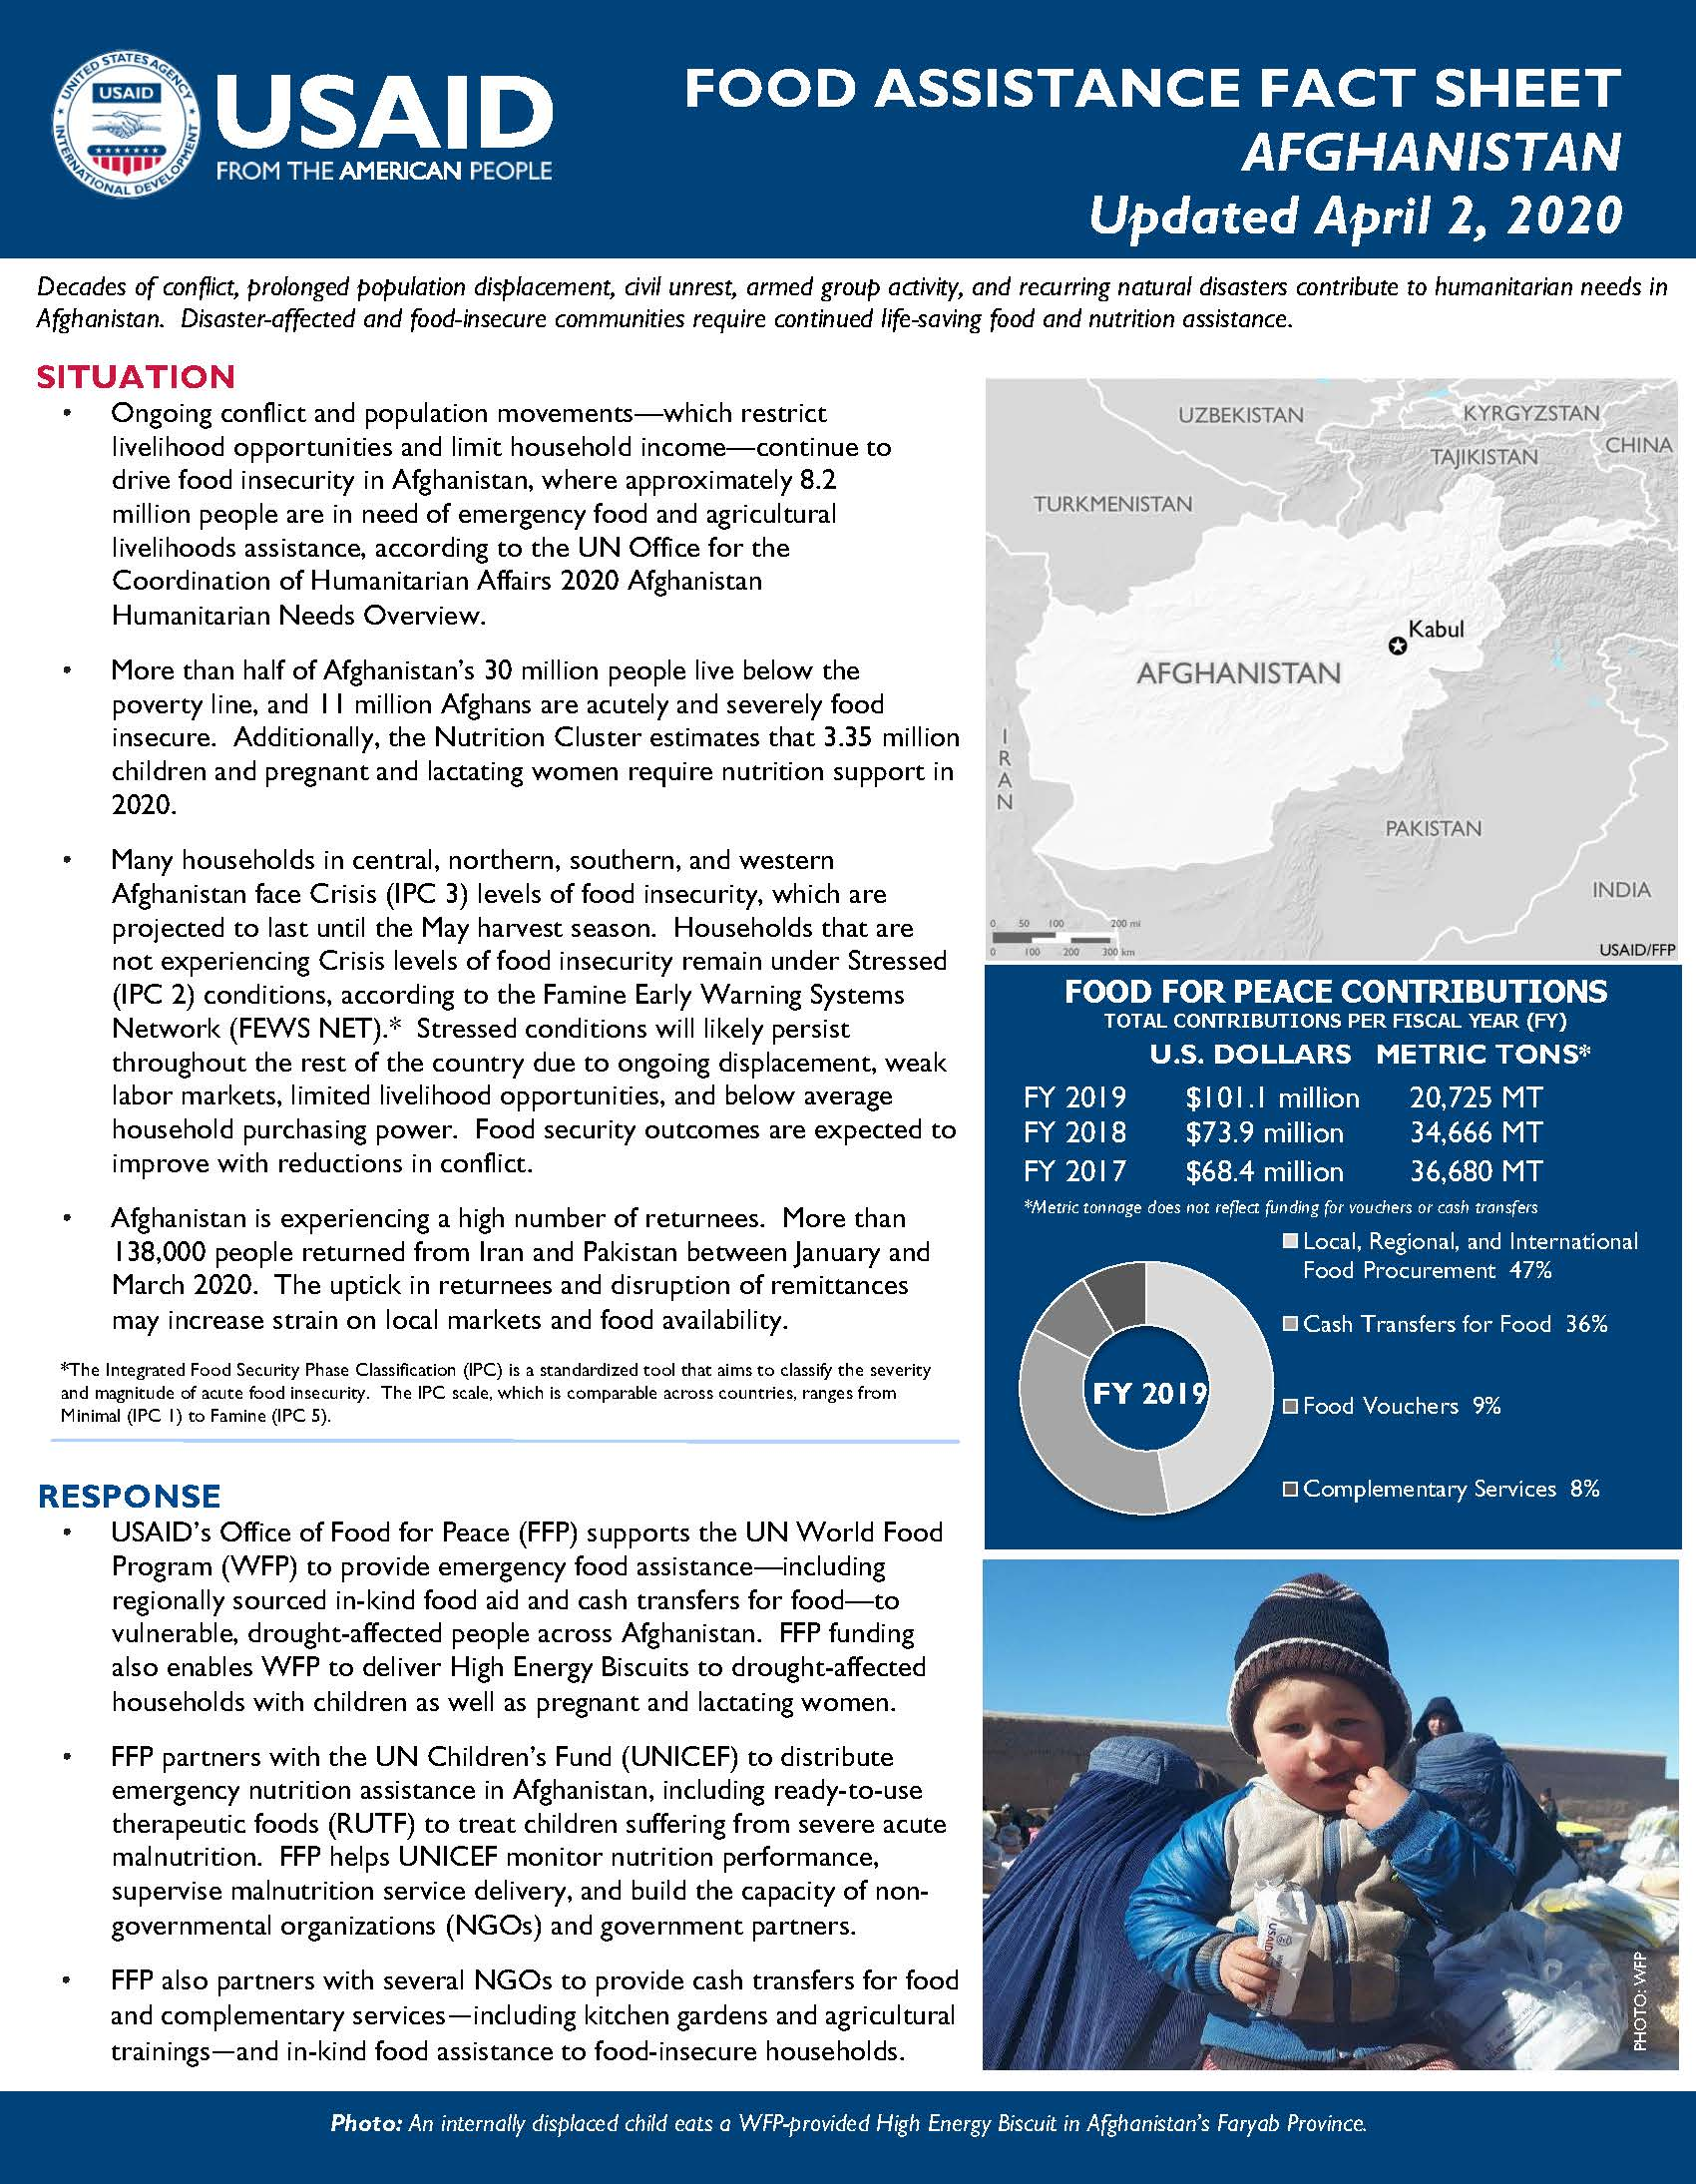 Food Assistance Fact Sheet - Afghanistan